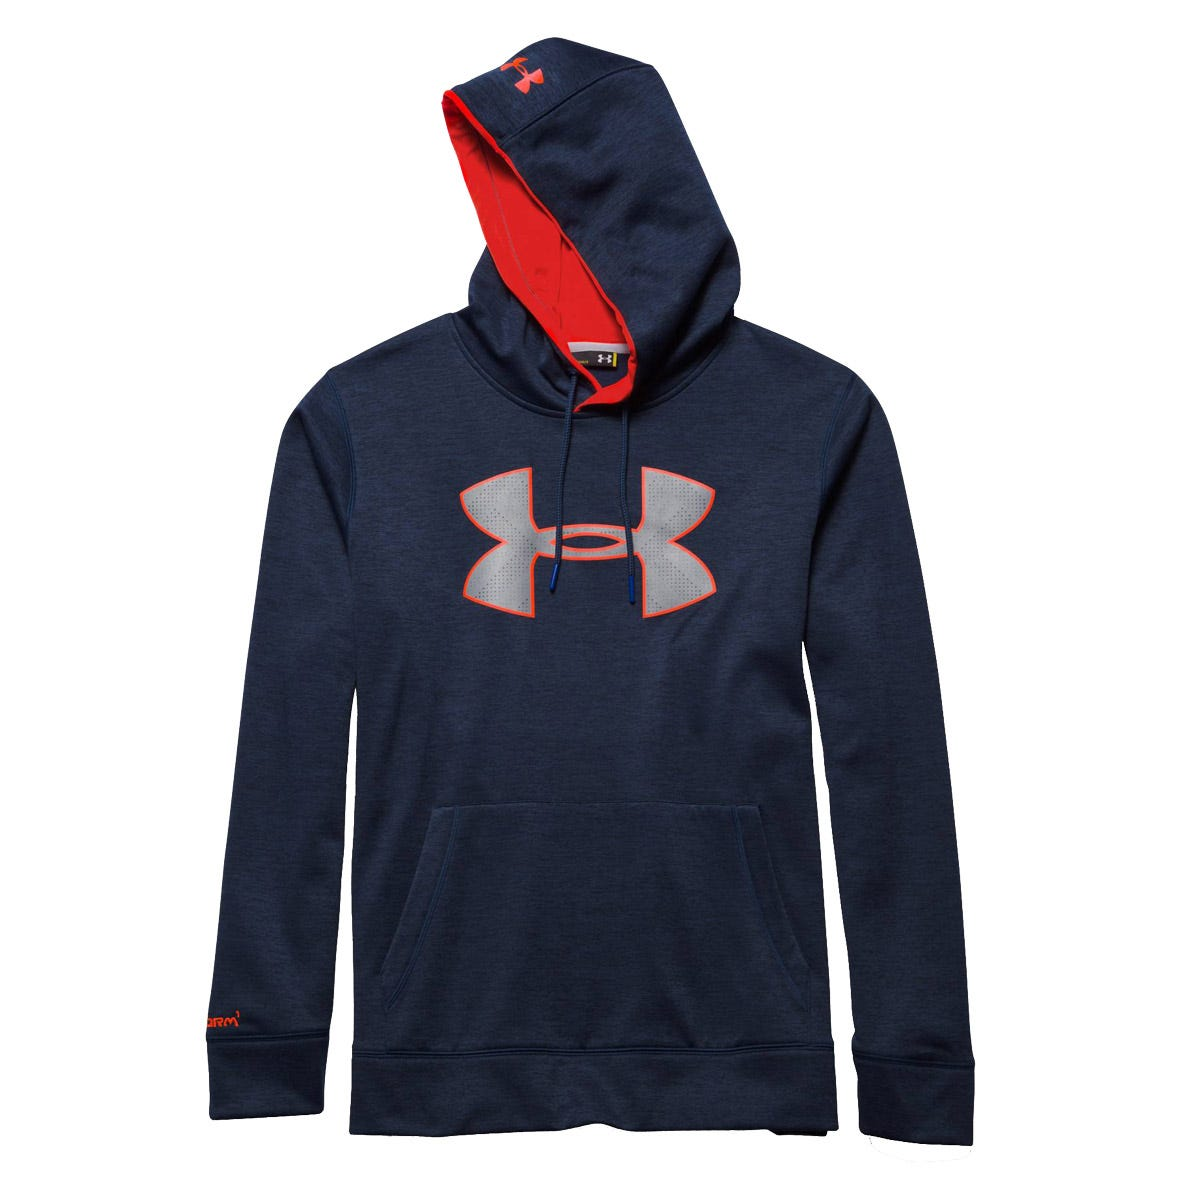 XL Baseball Big Logo Armour Hoody Under Armour; Unisex Black/Gray/Blue